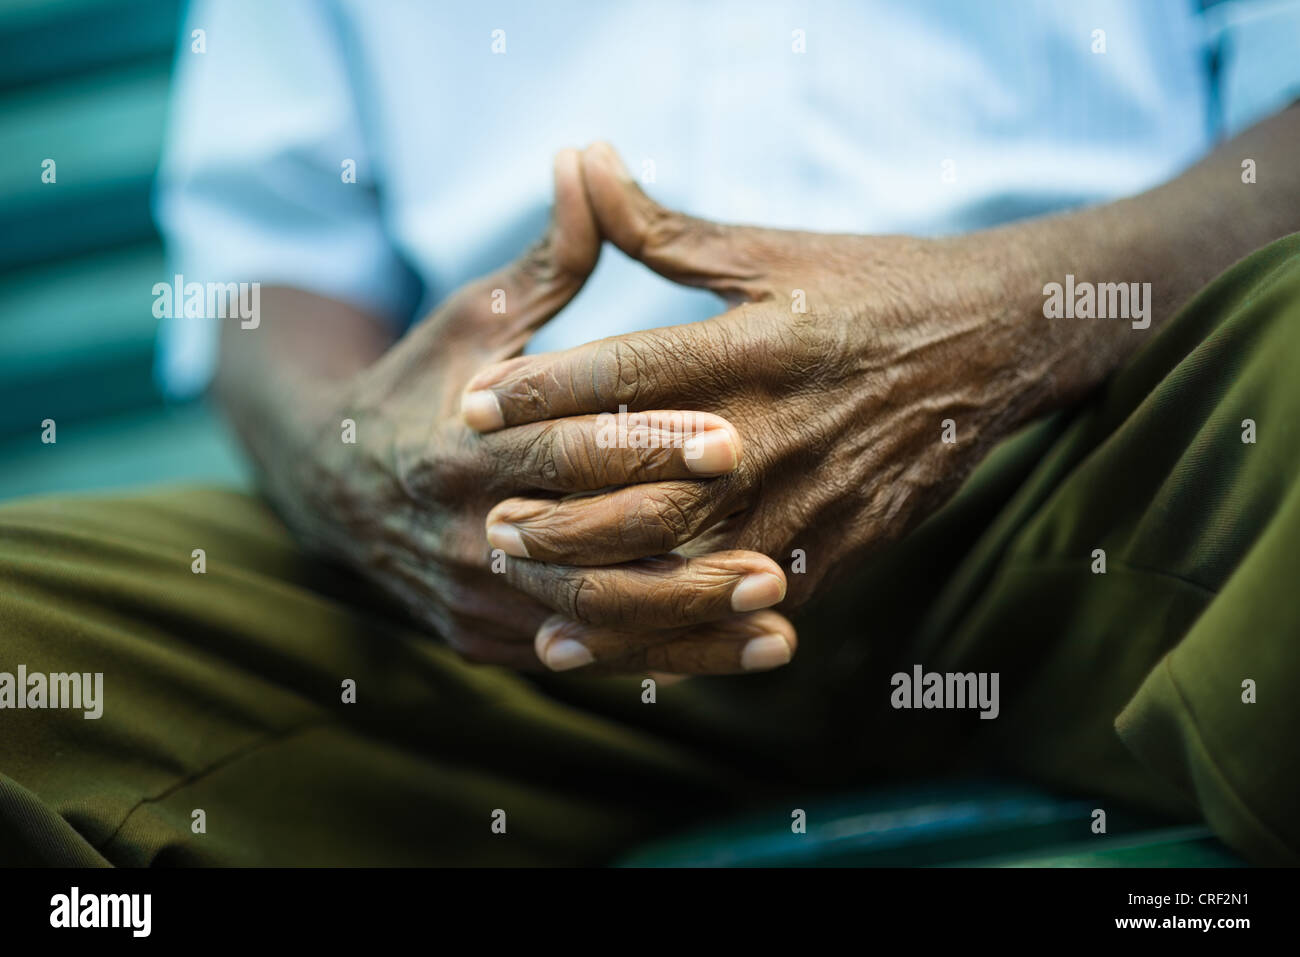 closeup of hands of elderly african american man sitting on bench - Stock Image